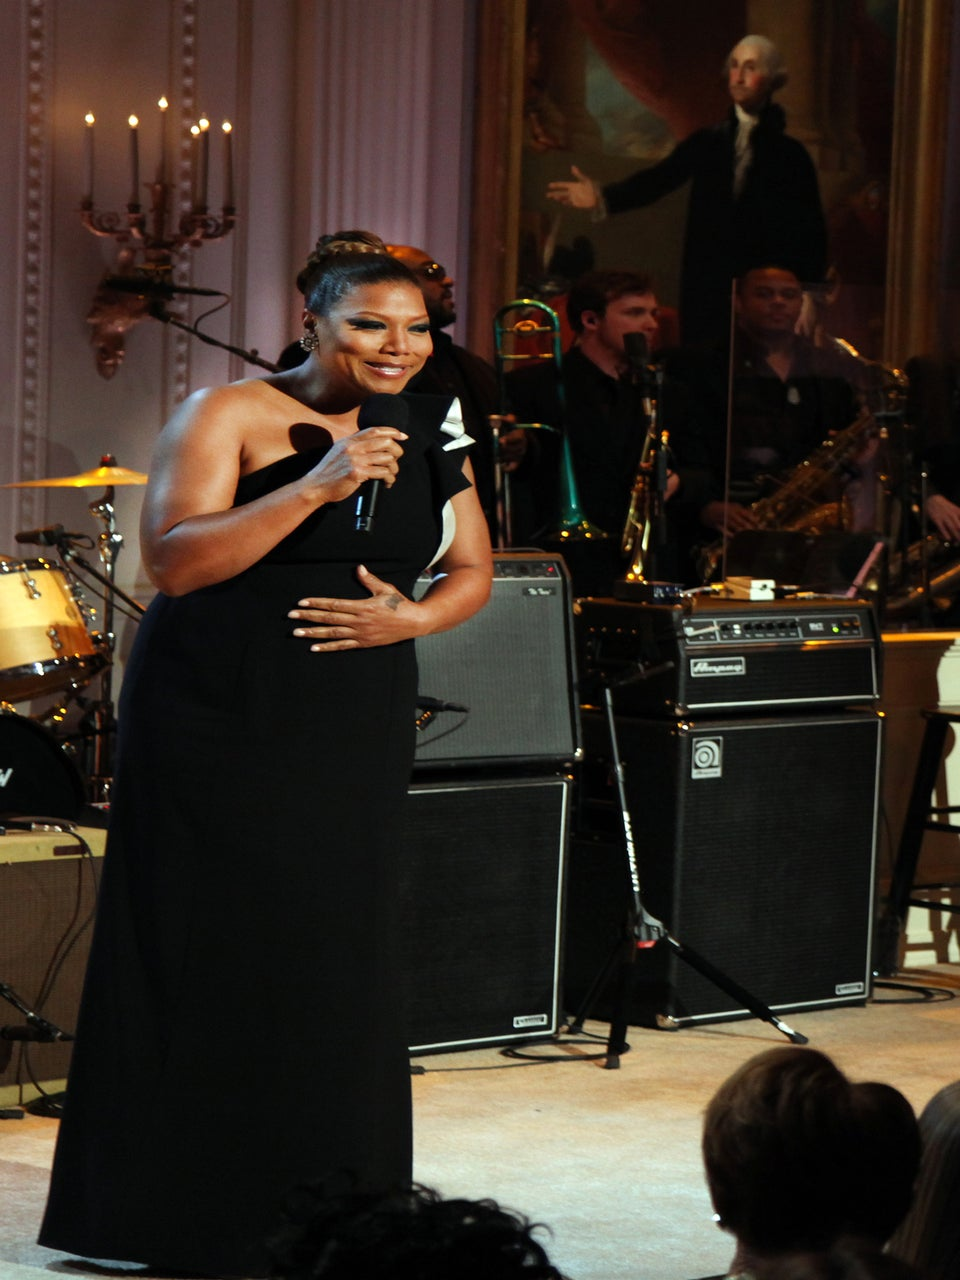 Coffee Talk: White House Celebrates Memphis Soul with Concert